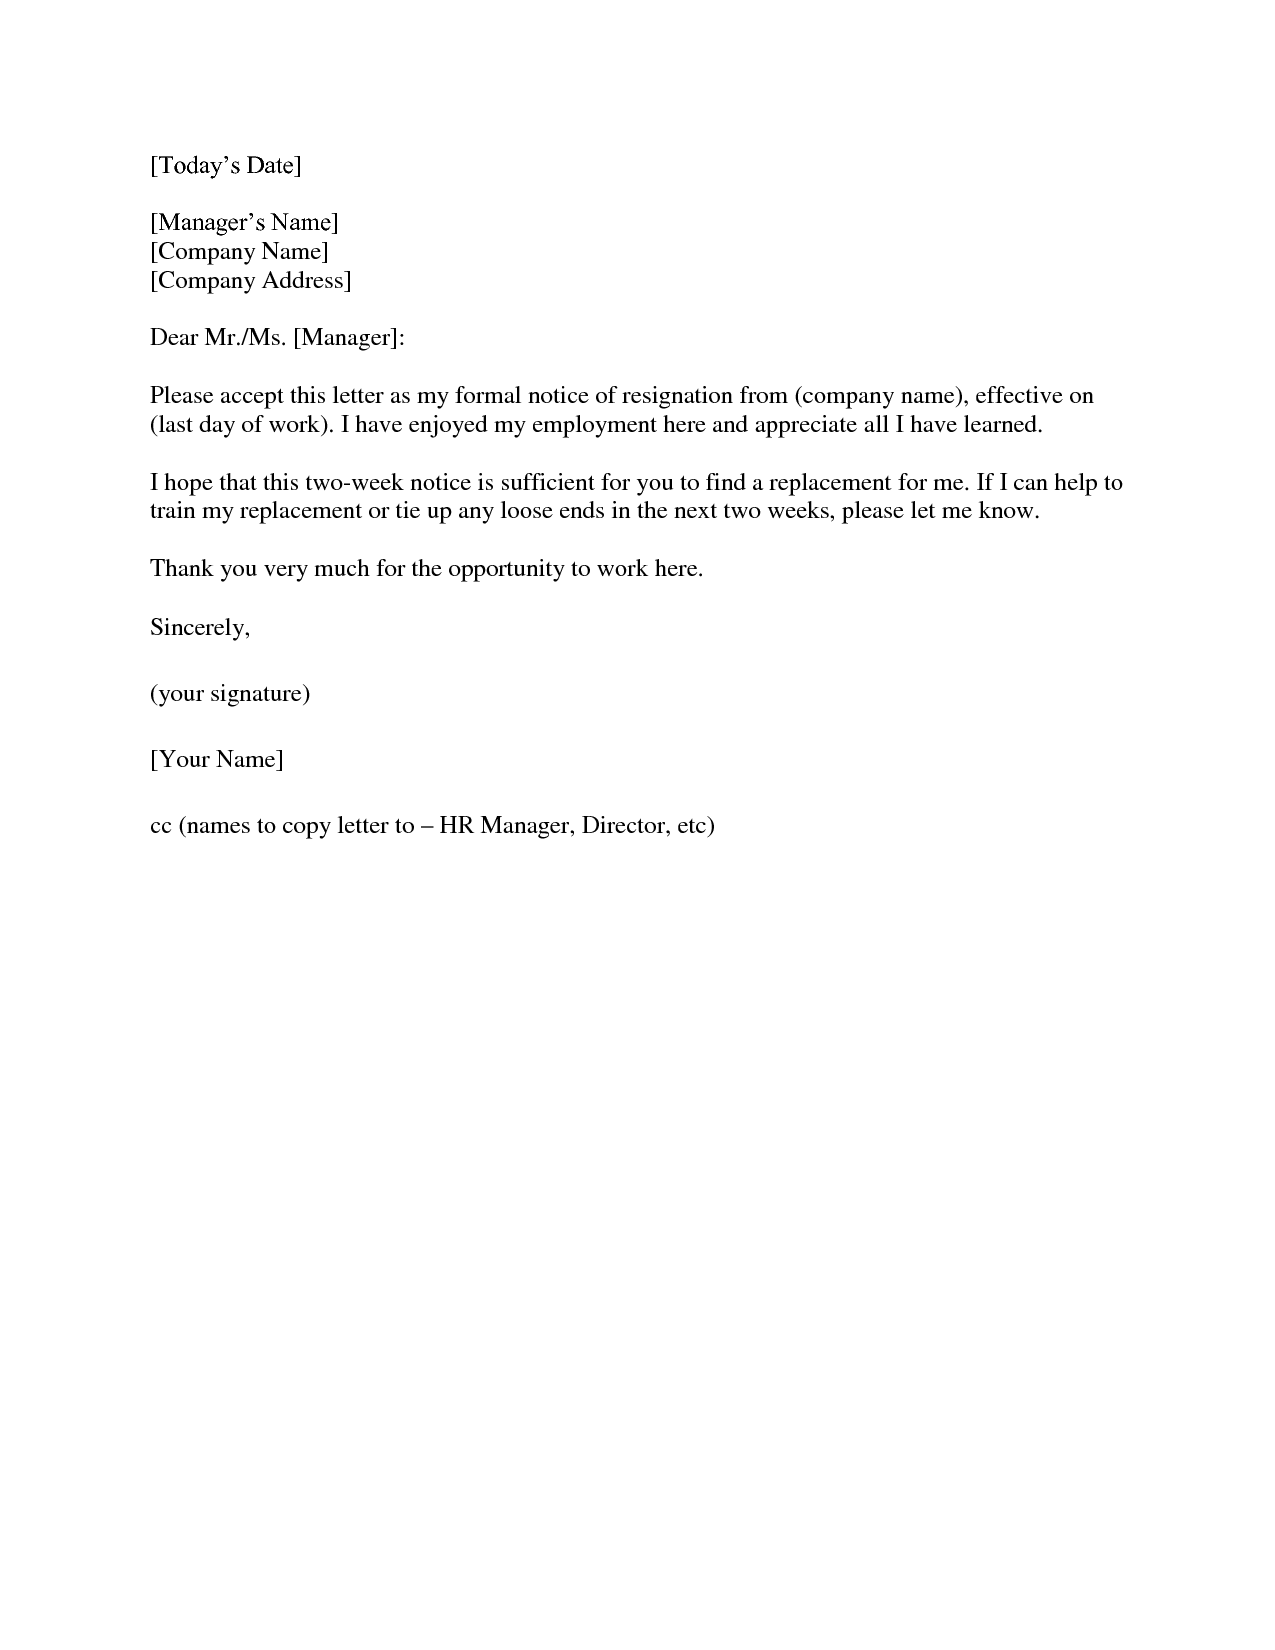 Delightful 2 Weeks Notice Letter | Resignation Letter: 2 Week Notice Ideas Letter Of Resignation 2 Weeks Notice